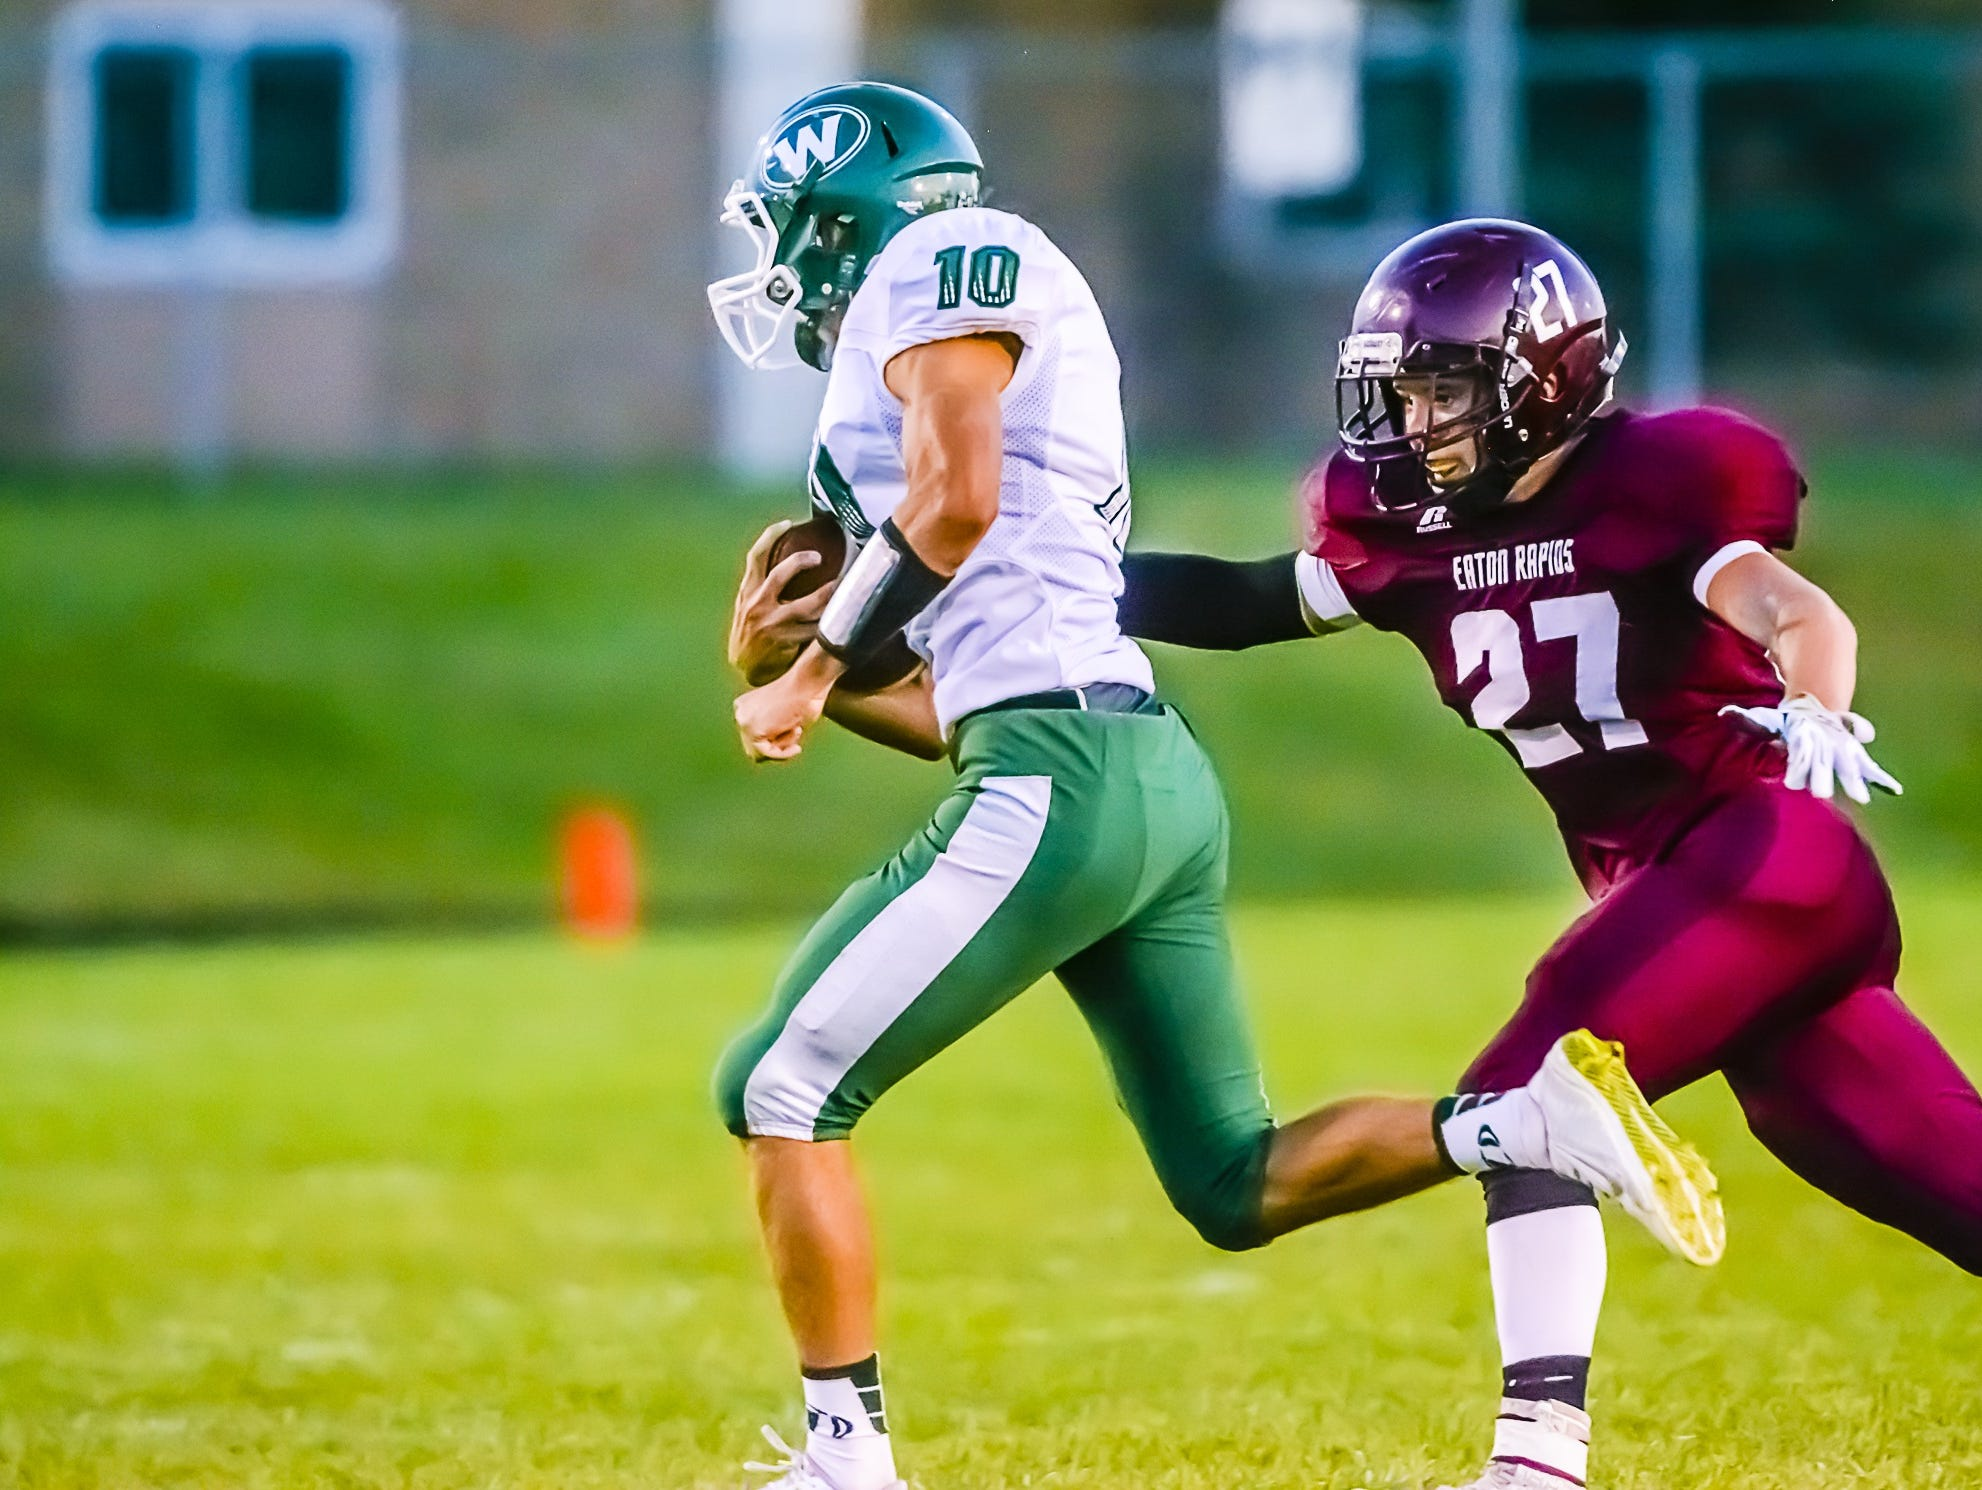 Logan Fenech,10, of Williamston, tries to turn the corner during the Hornets' game against Eaton Rapids last season. Fenech is one of four returning starters for Williamston's offense in 2016.